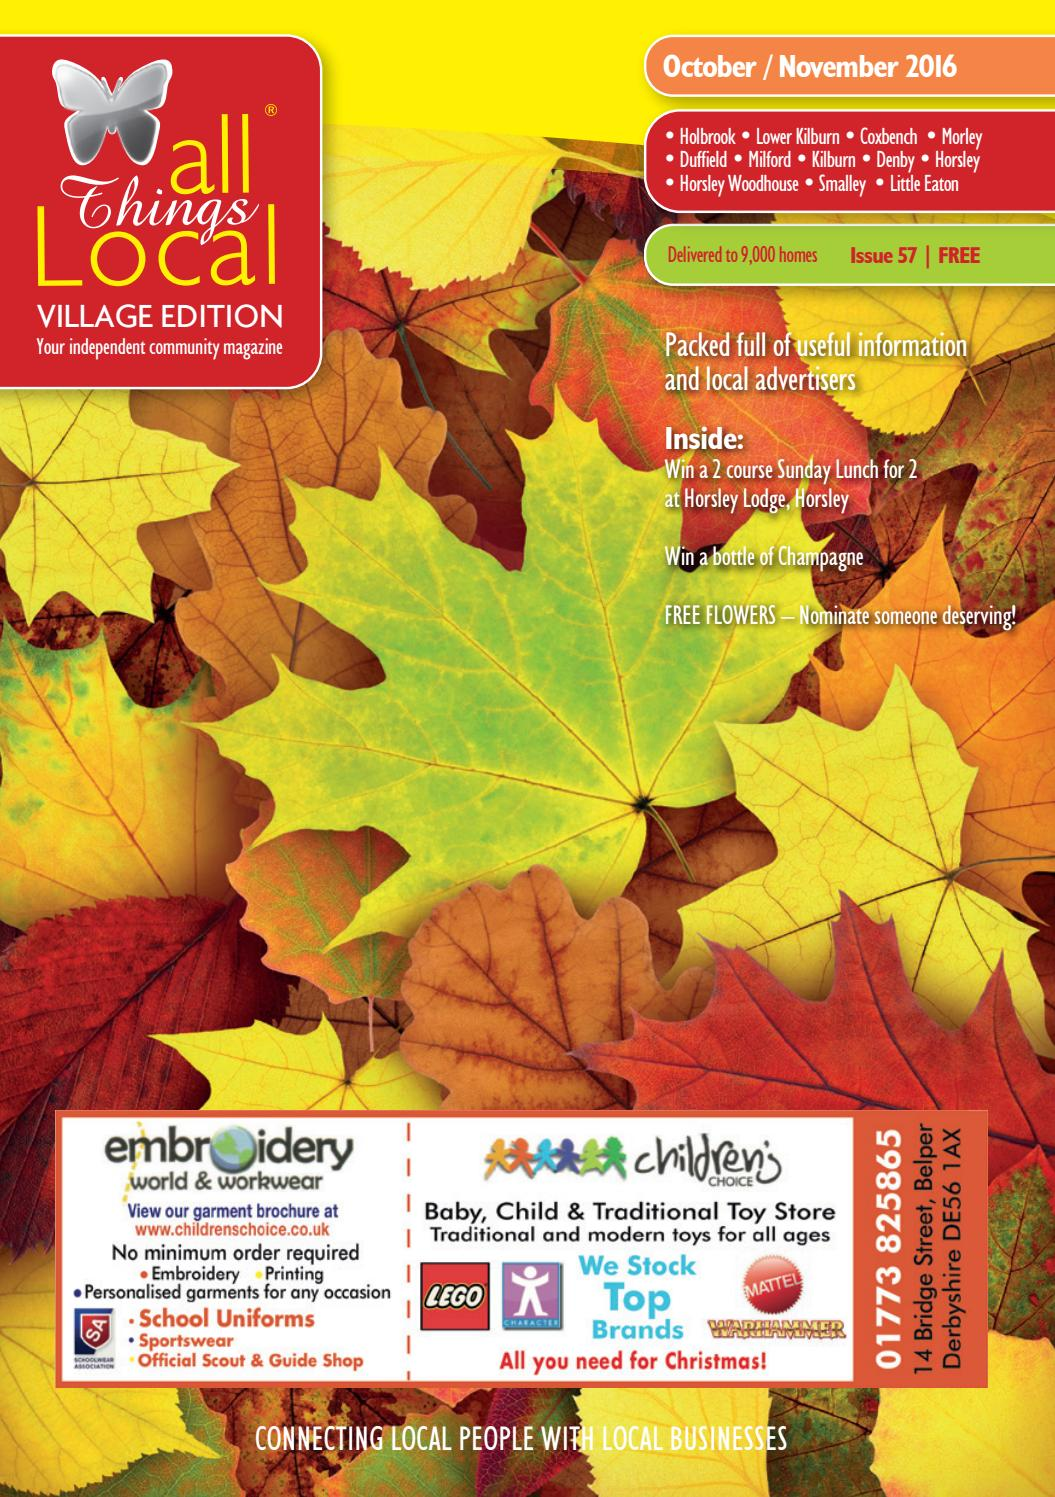 All Things Local - Village Edition - October/November 2016 by ...